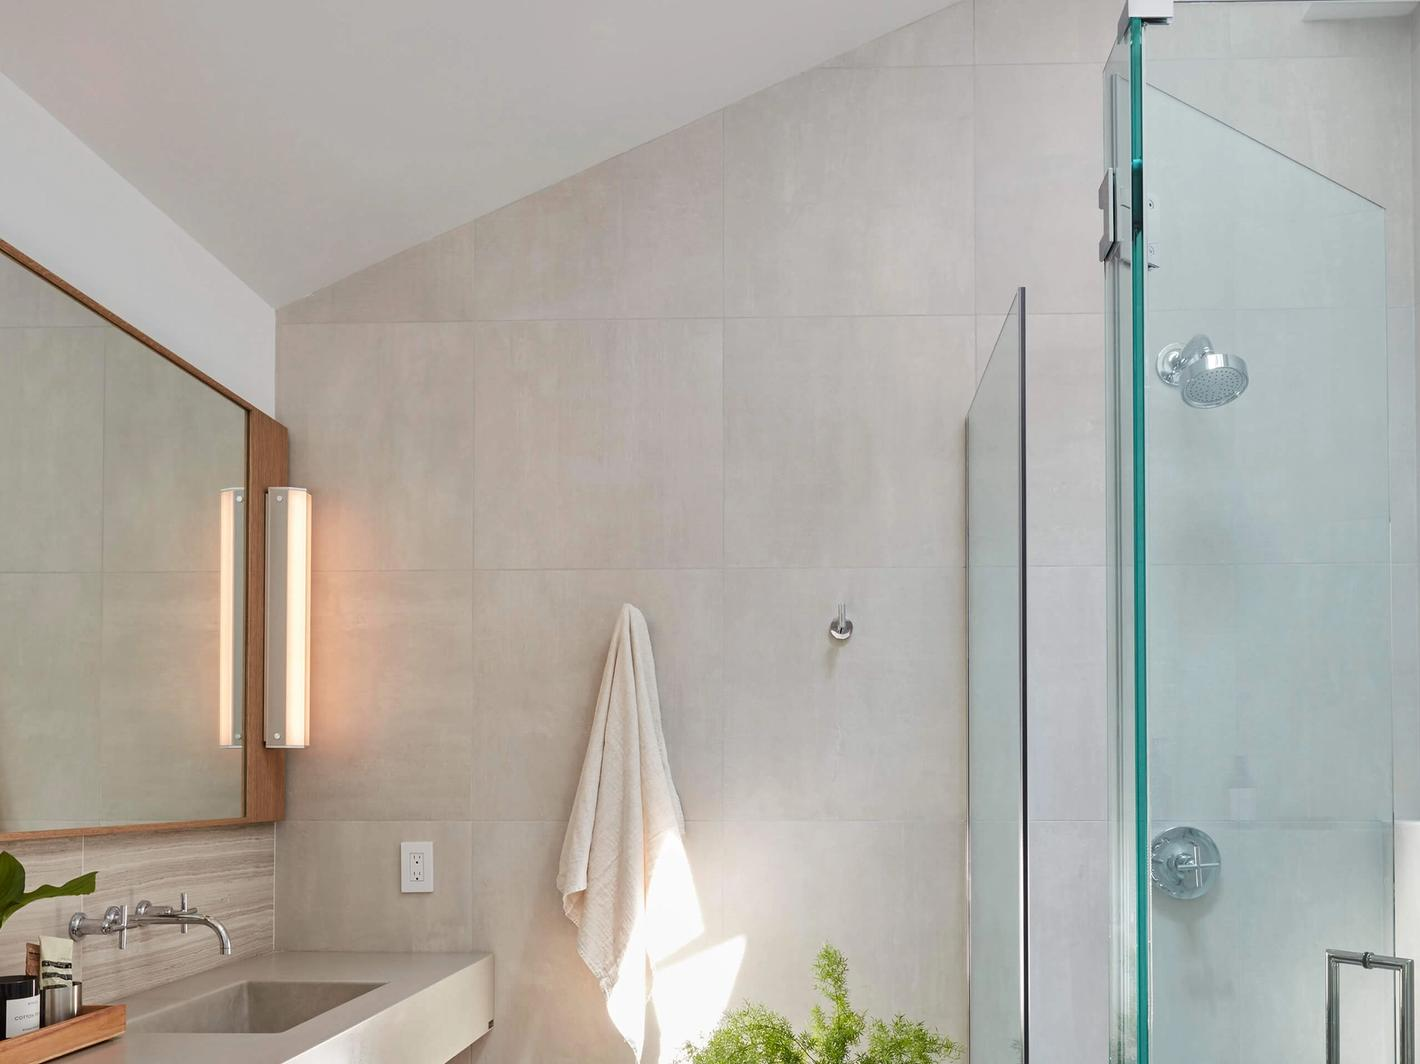 Branch sconce in natural (silver) anodized aluminum finish installed in bathroom